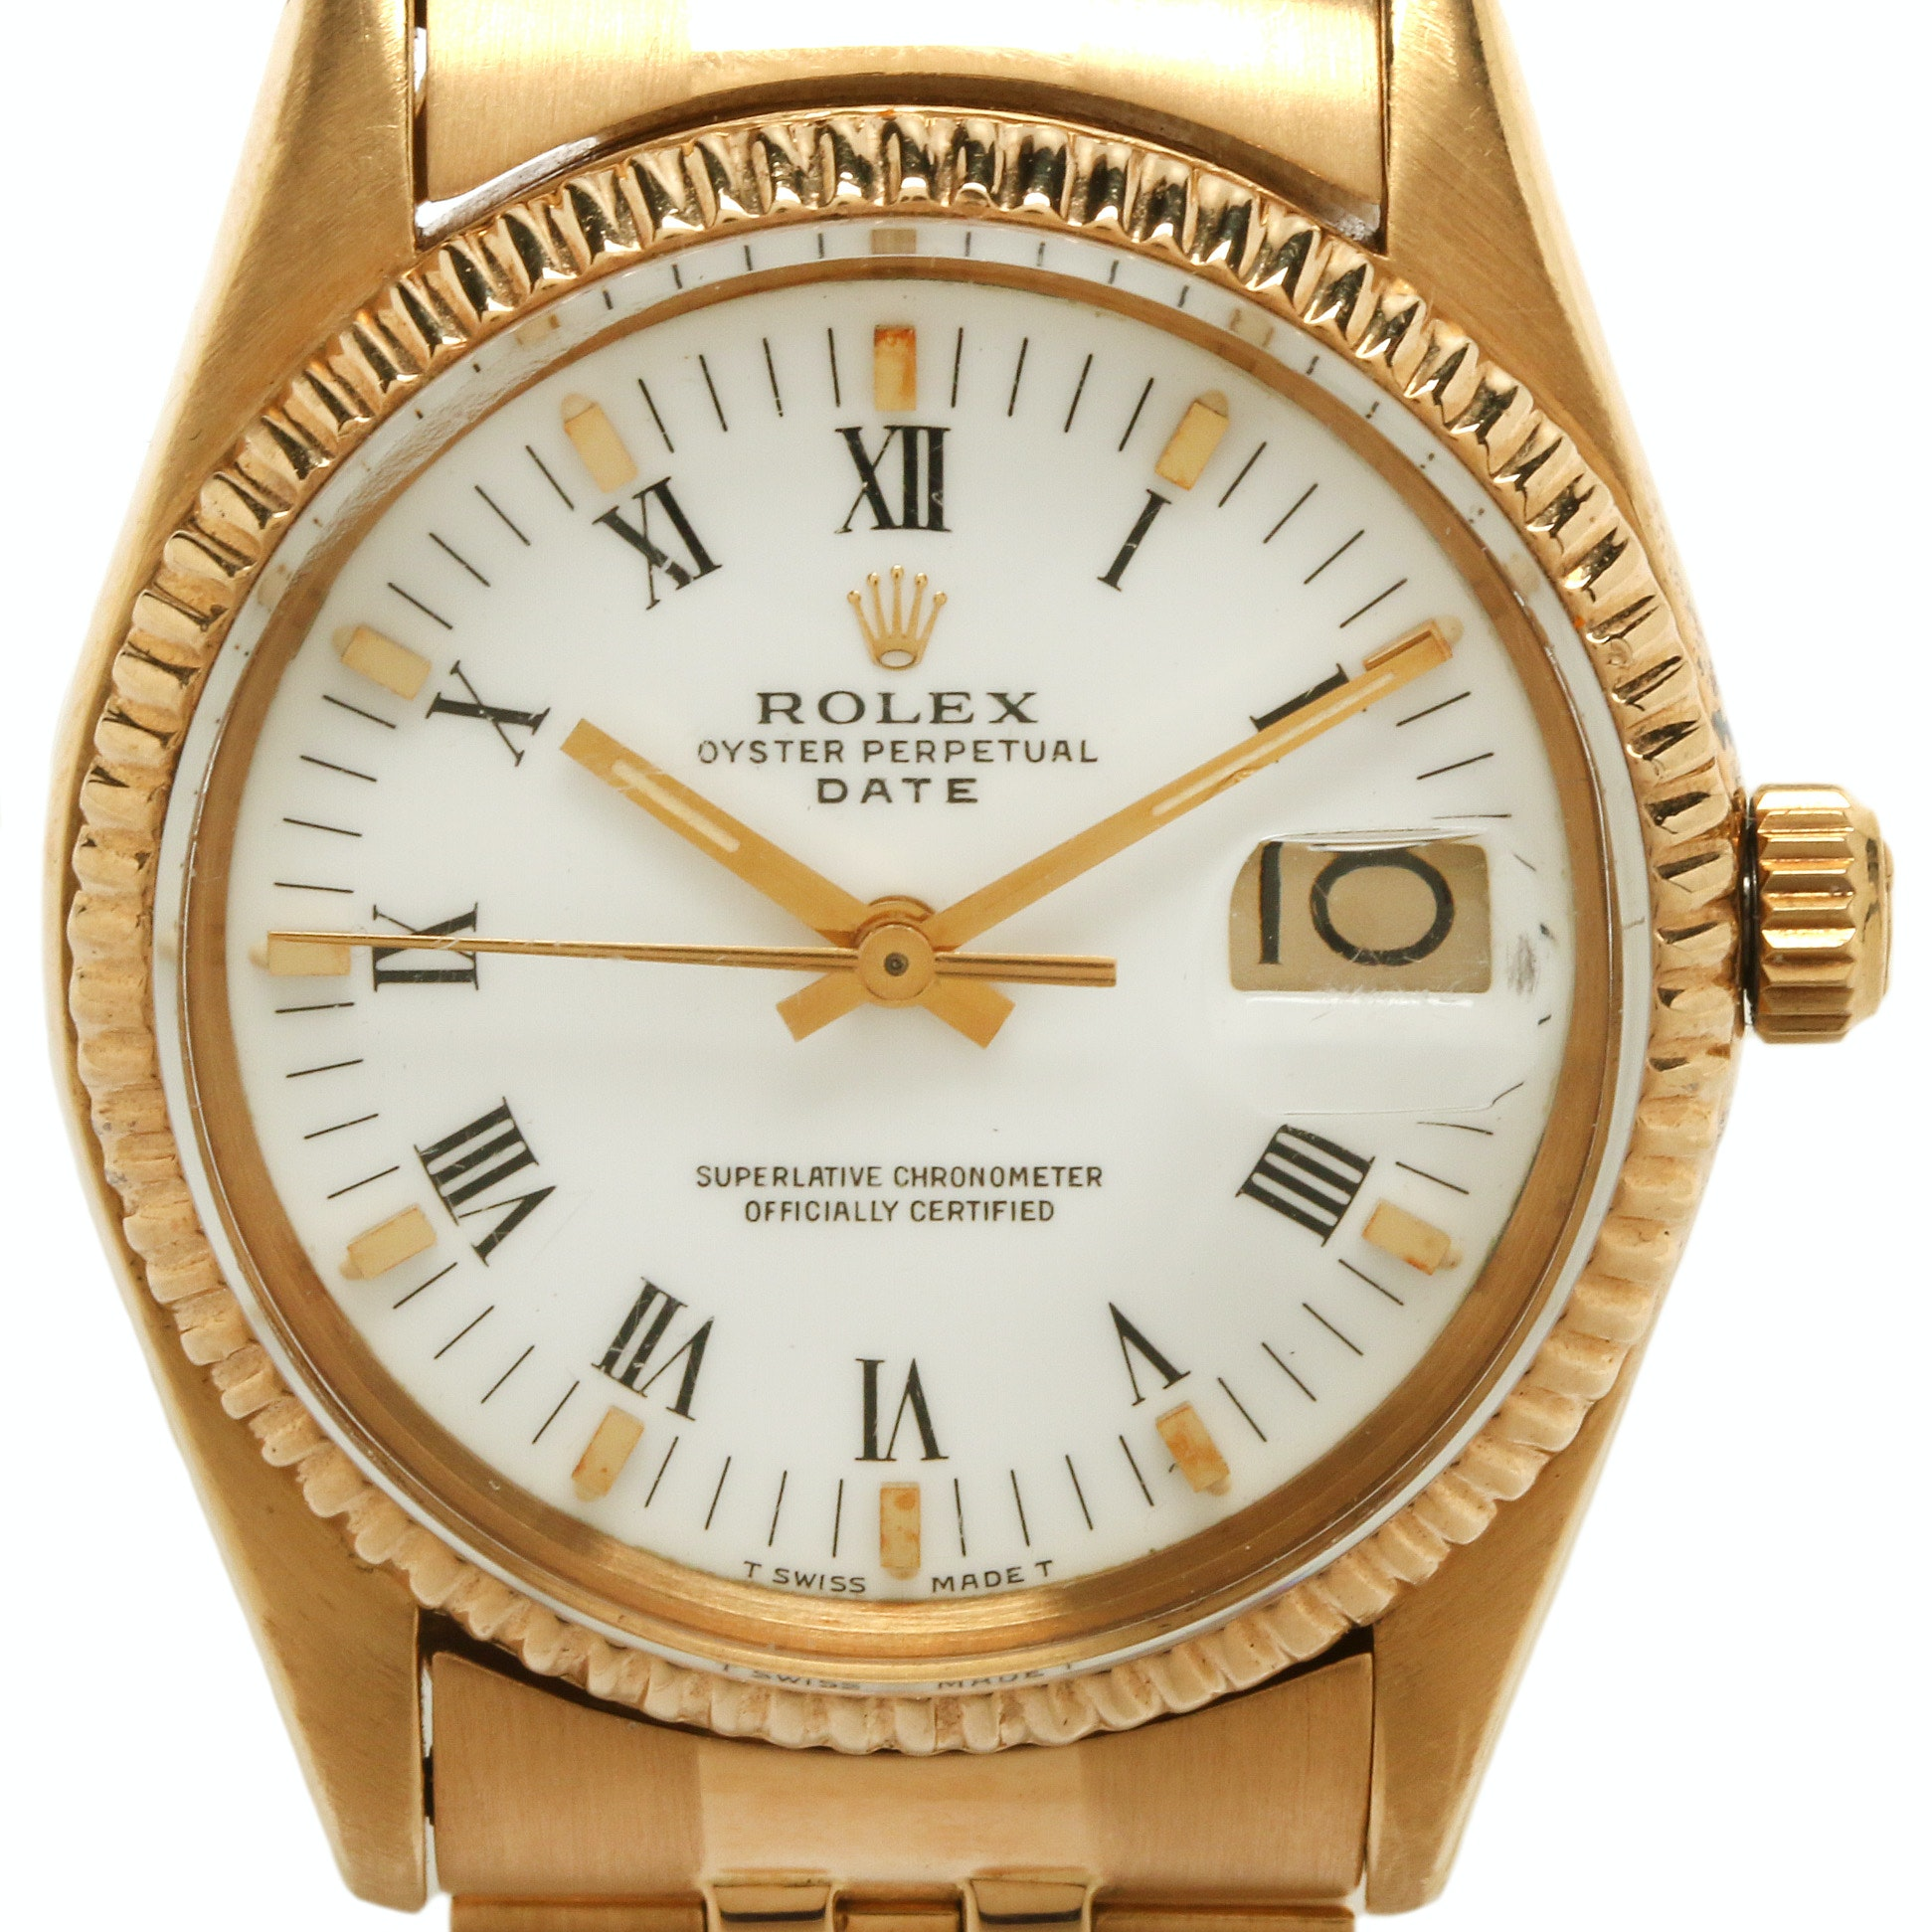 Rolex Date 18K Yellow Gold Wristwatch, 1983